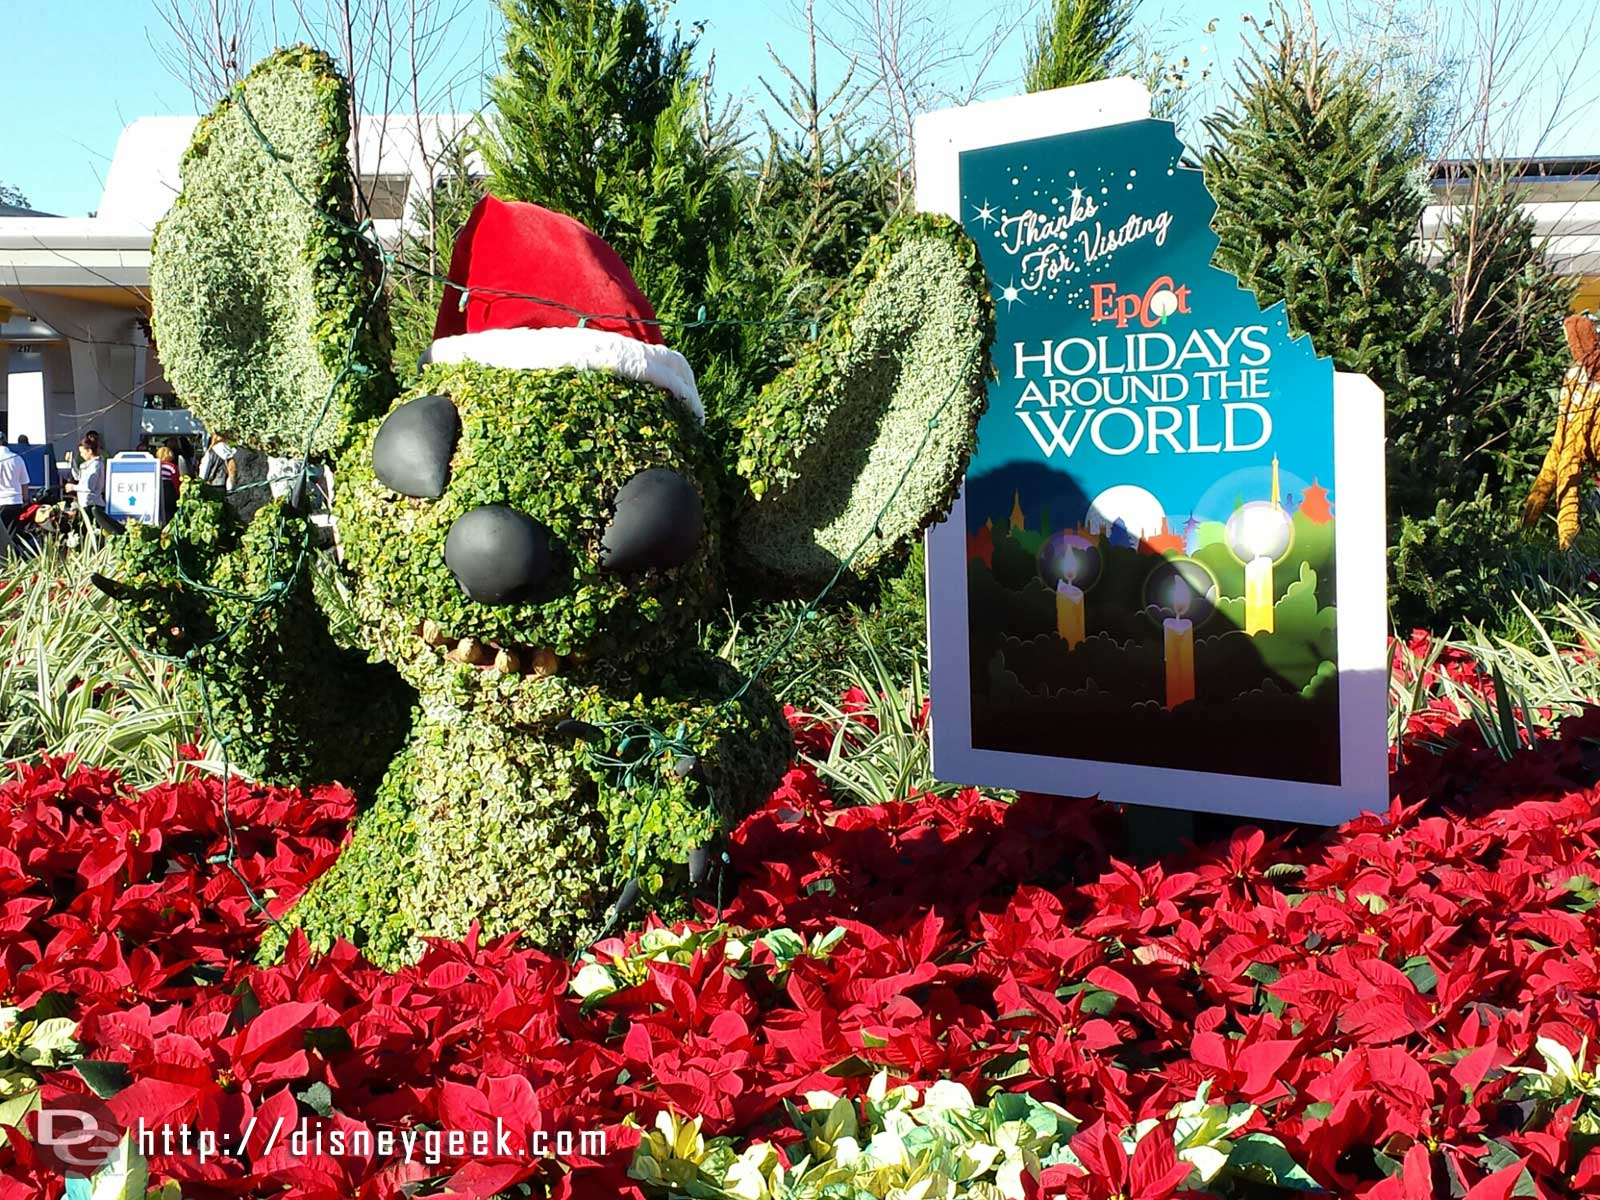 Stitch topiary at the entrance of #Epcot for Holidays Around the World